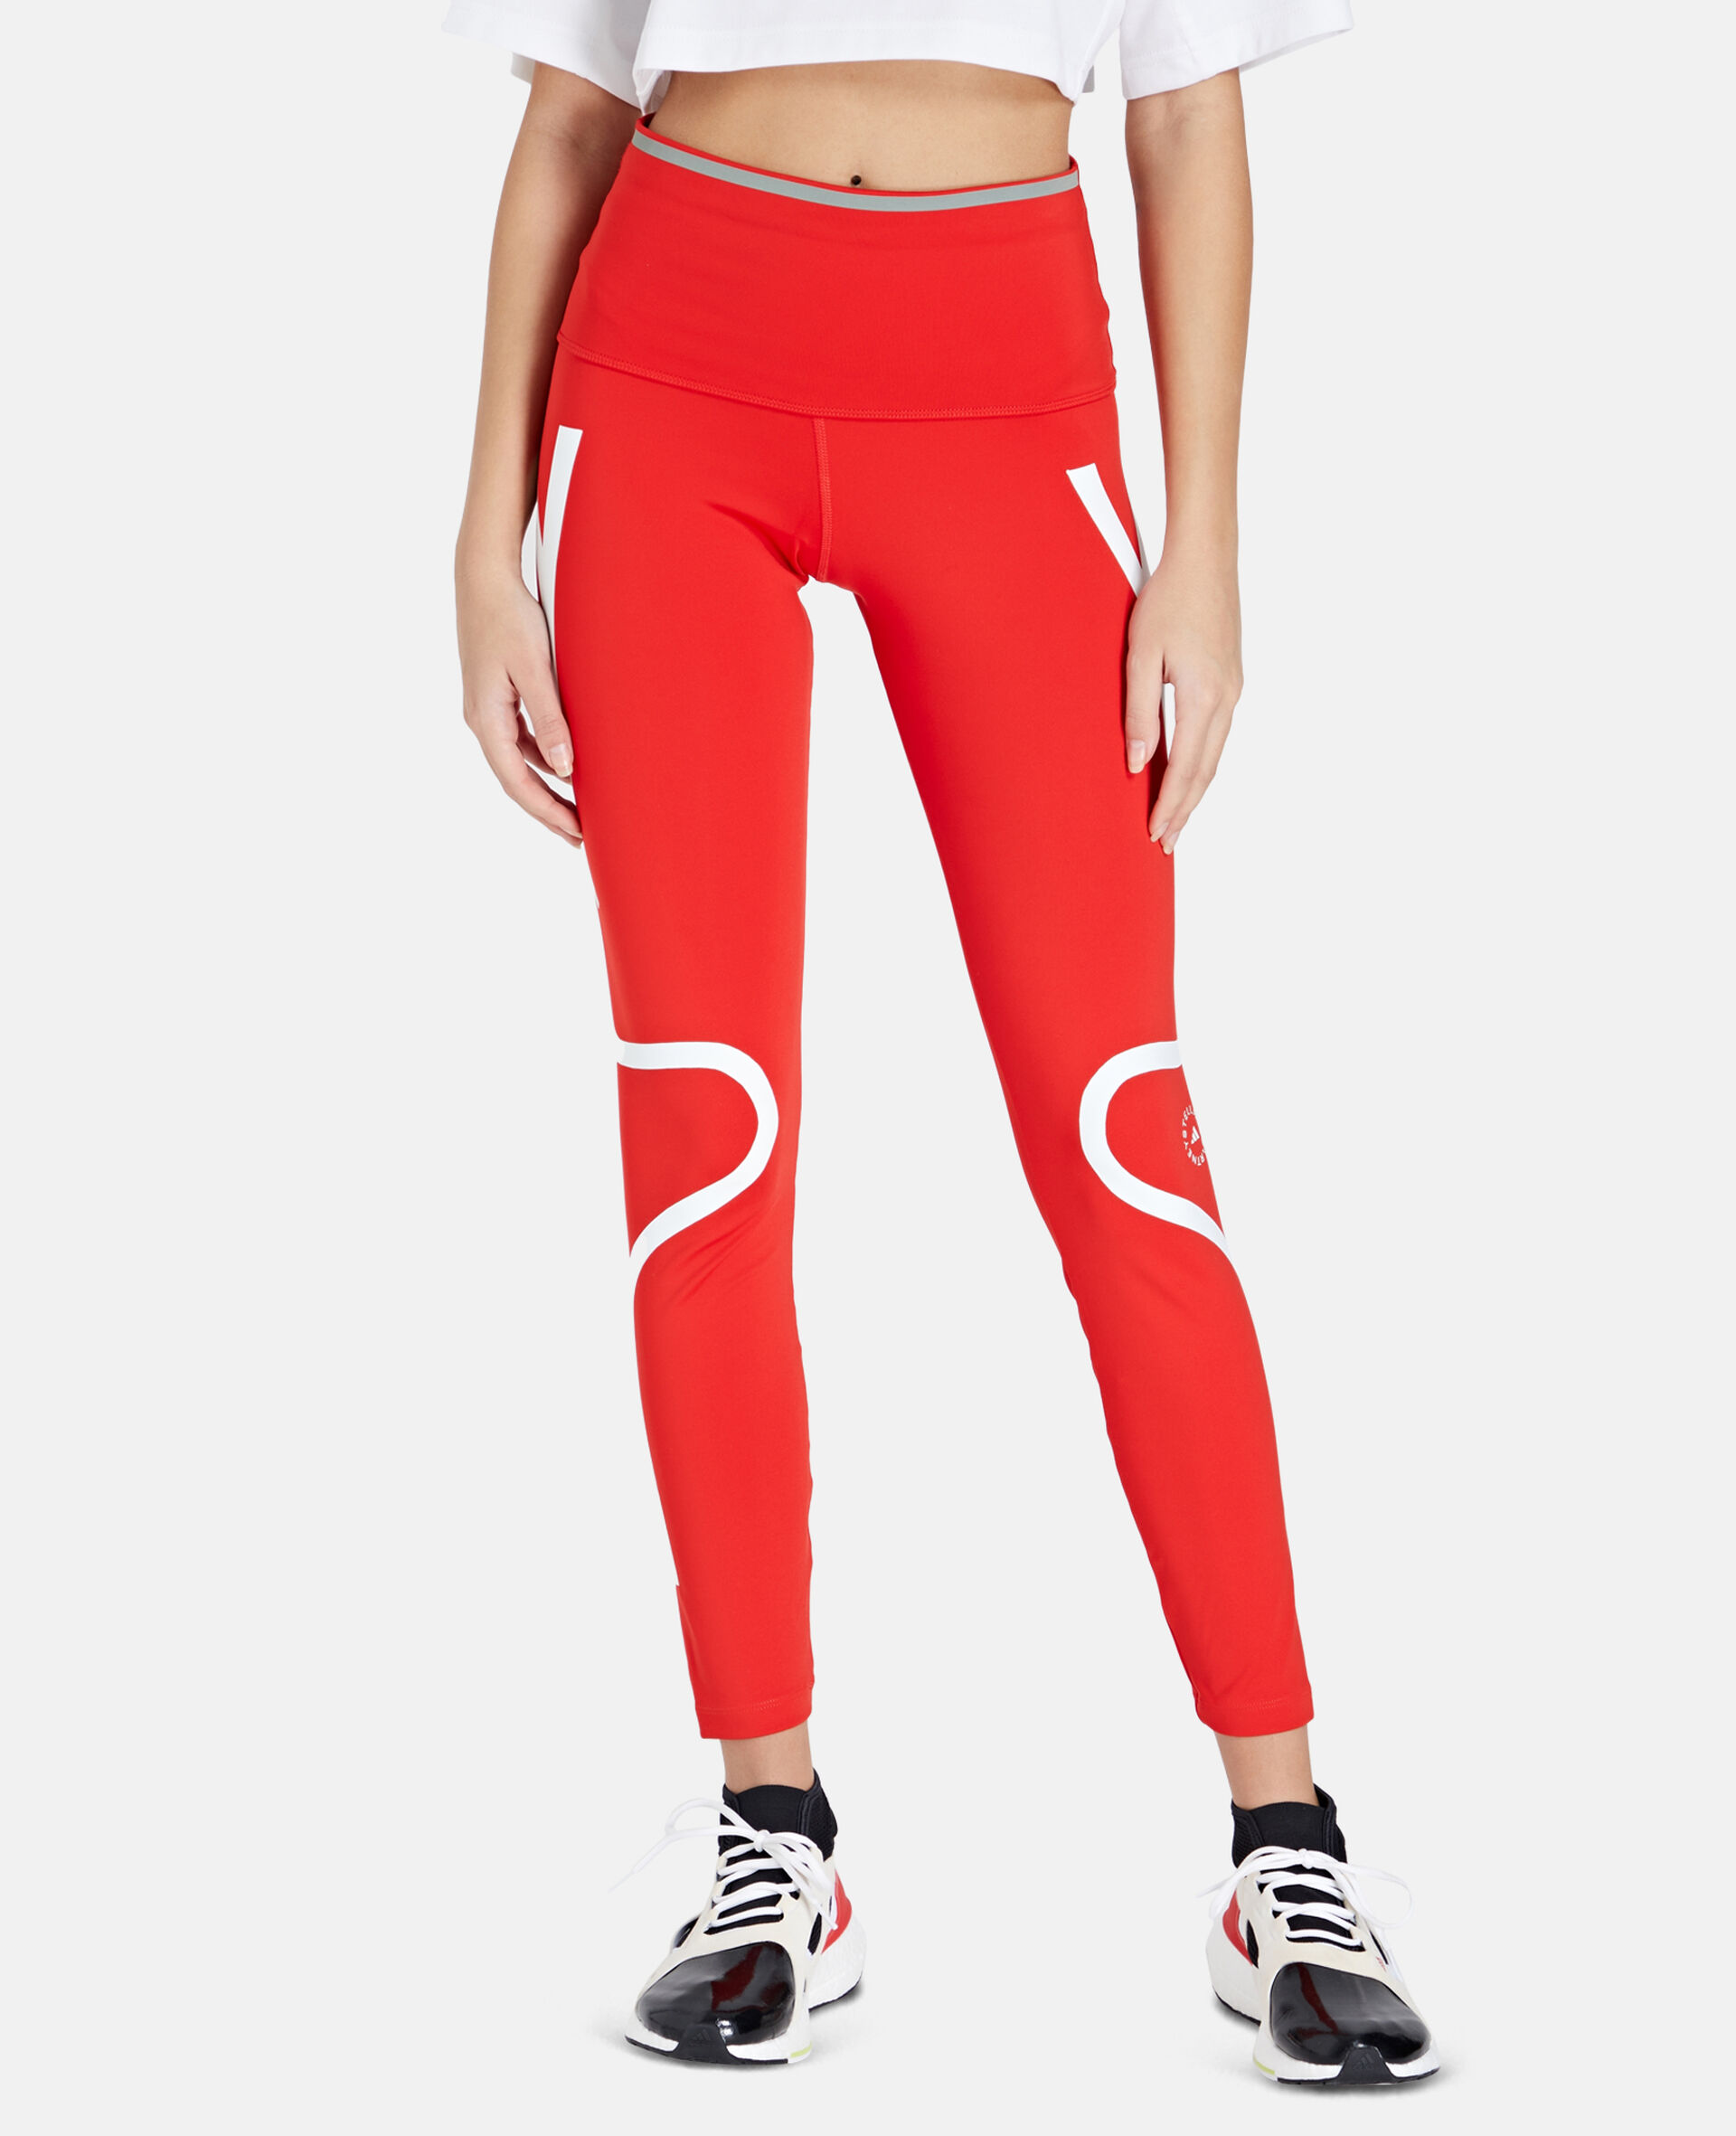 TruePace Long Running Tights-Red-large image number 4